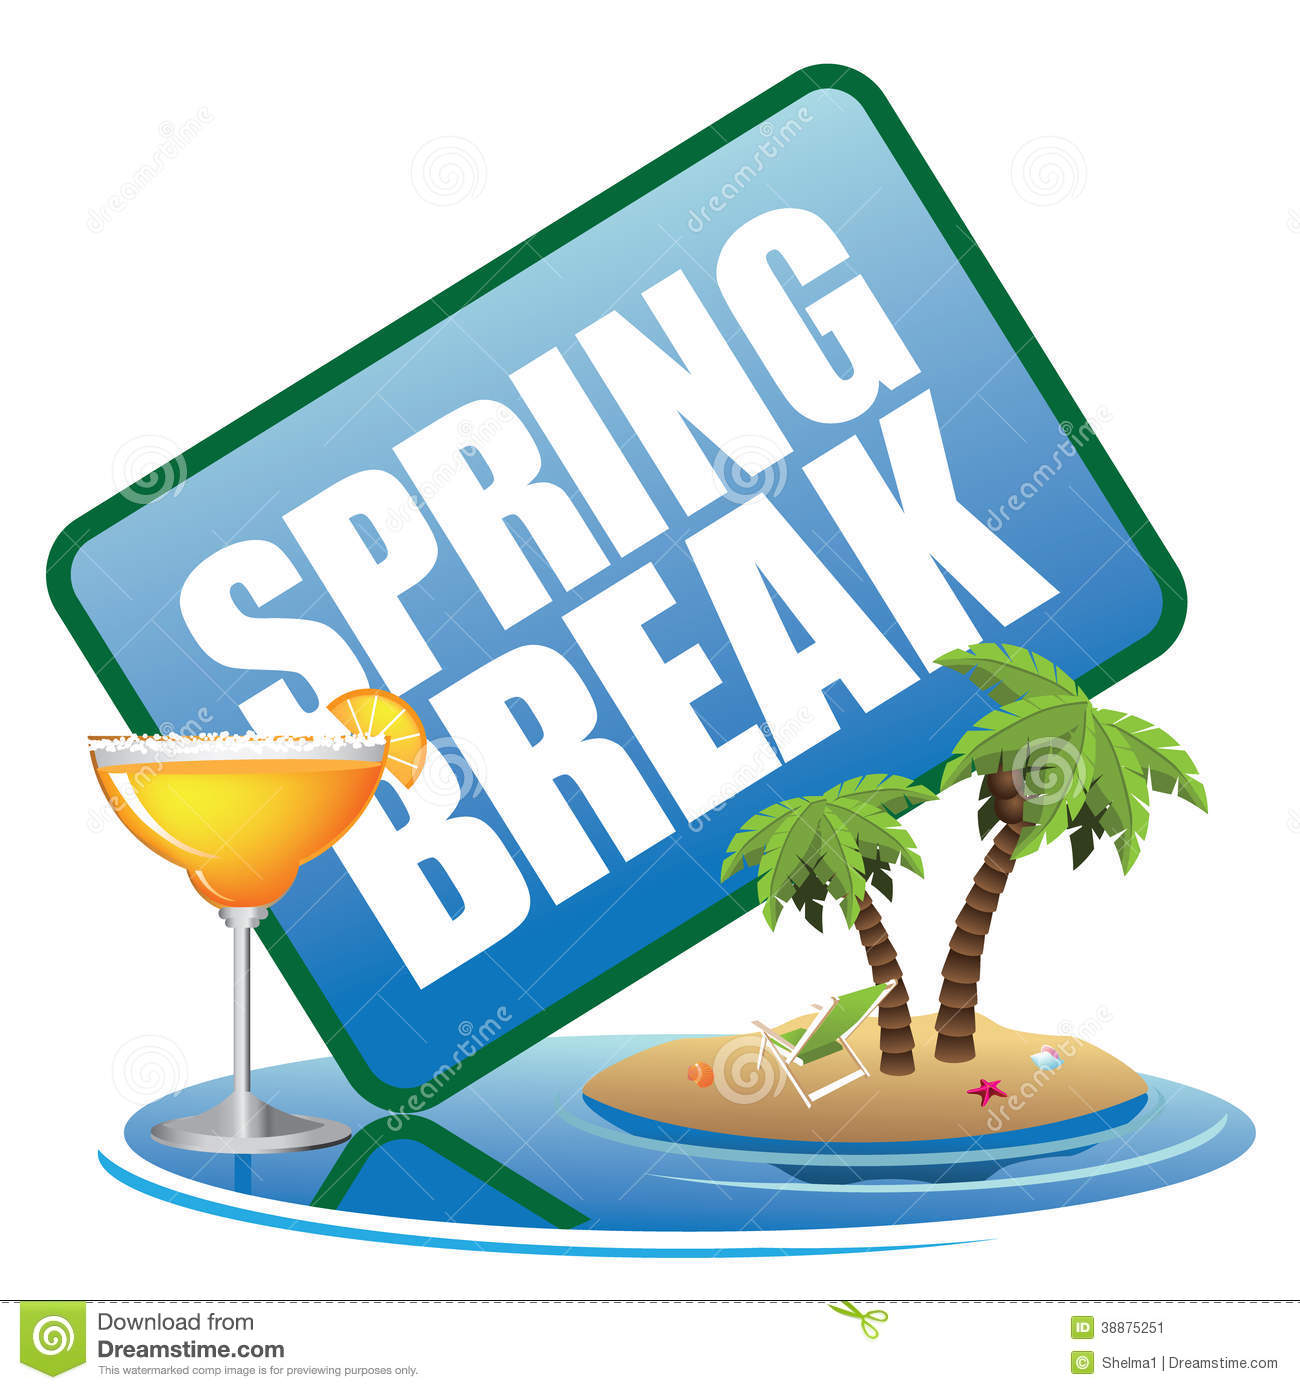 spring vacation clipart - photo #32